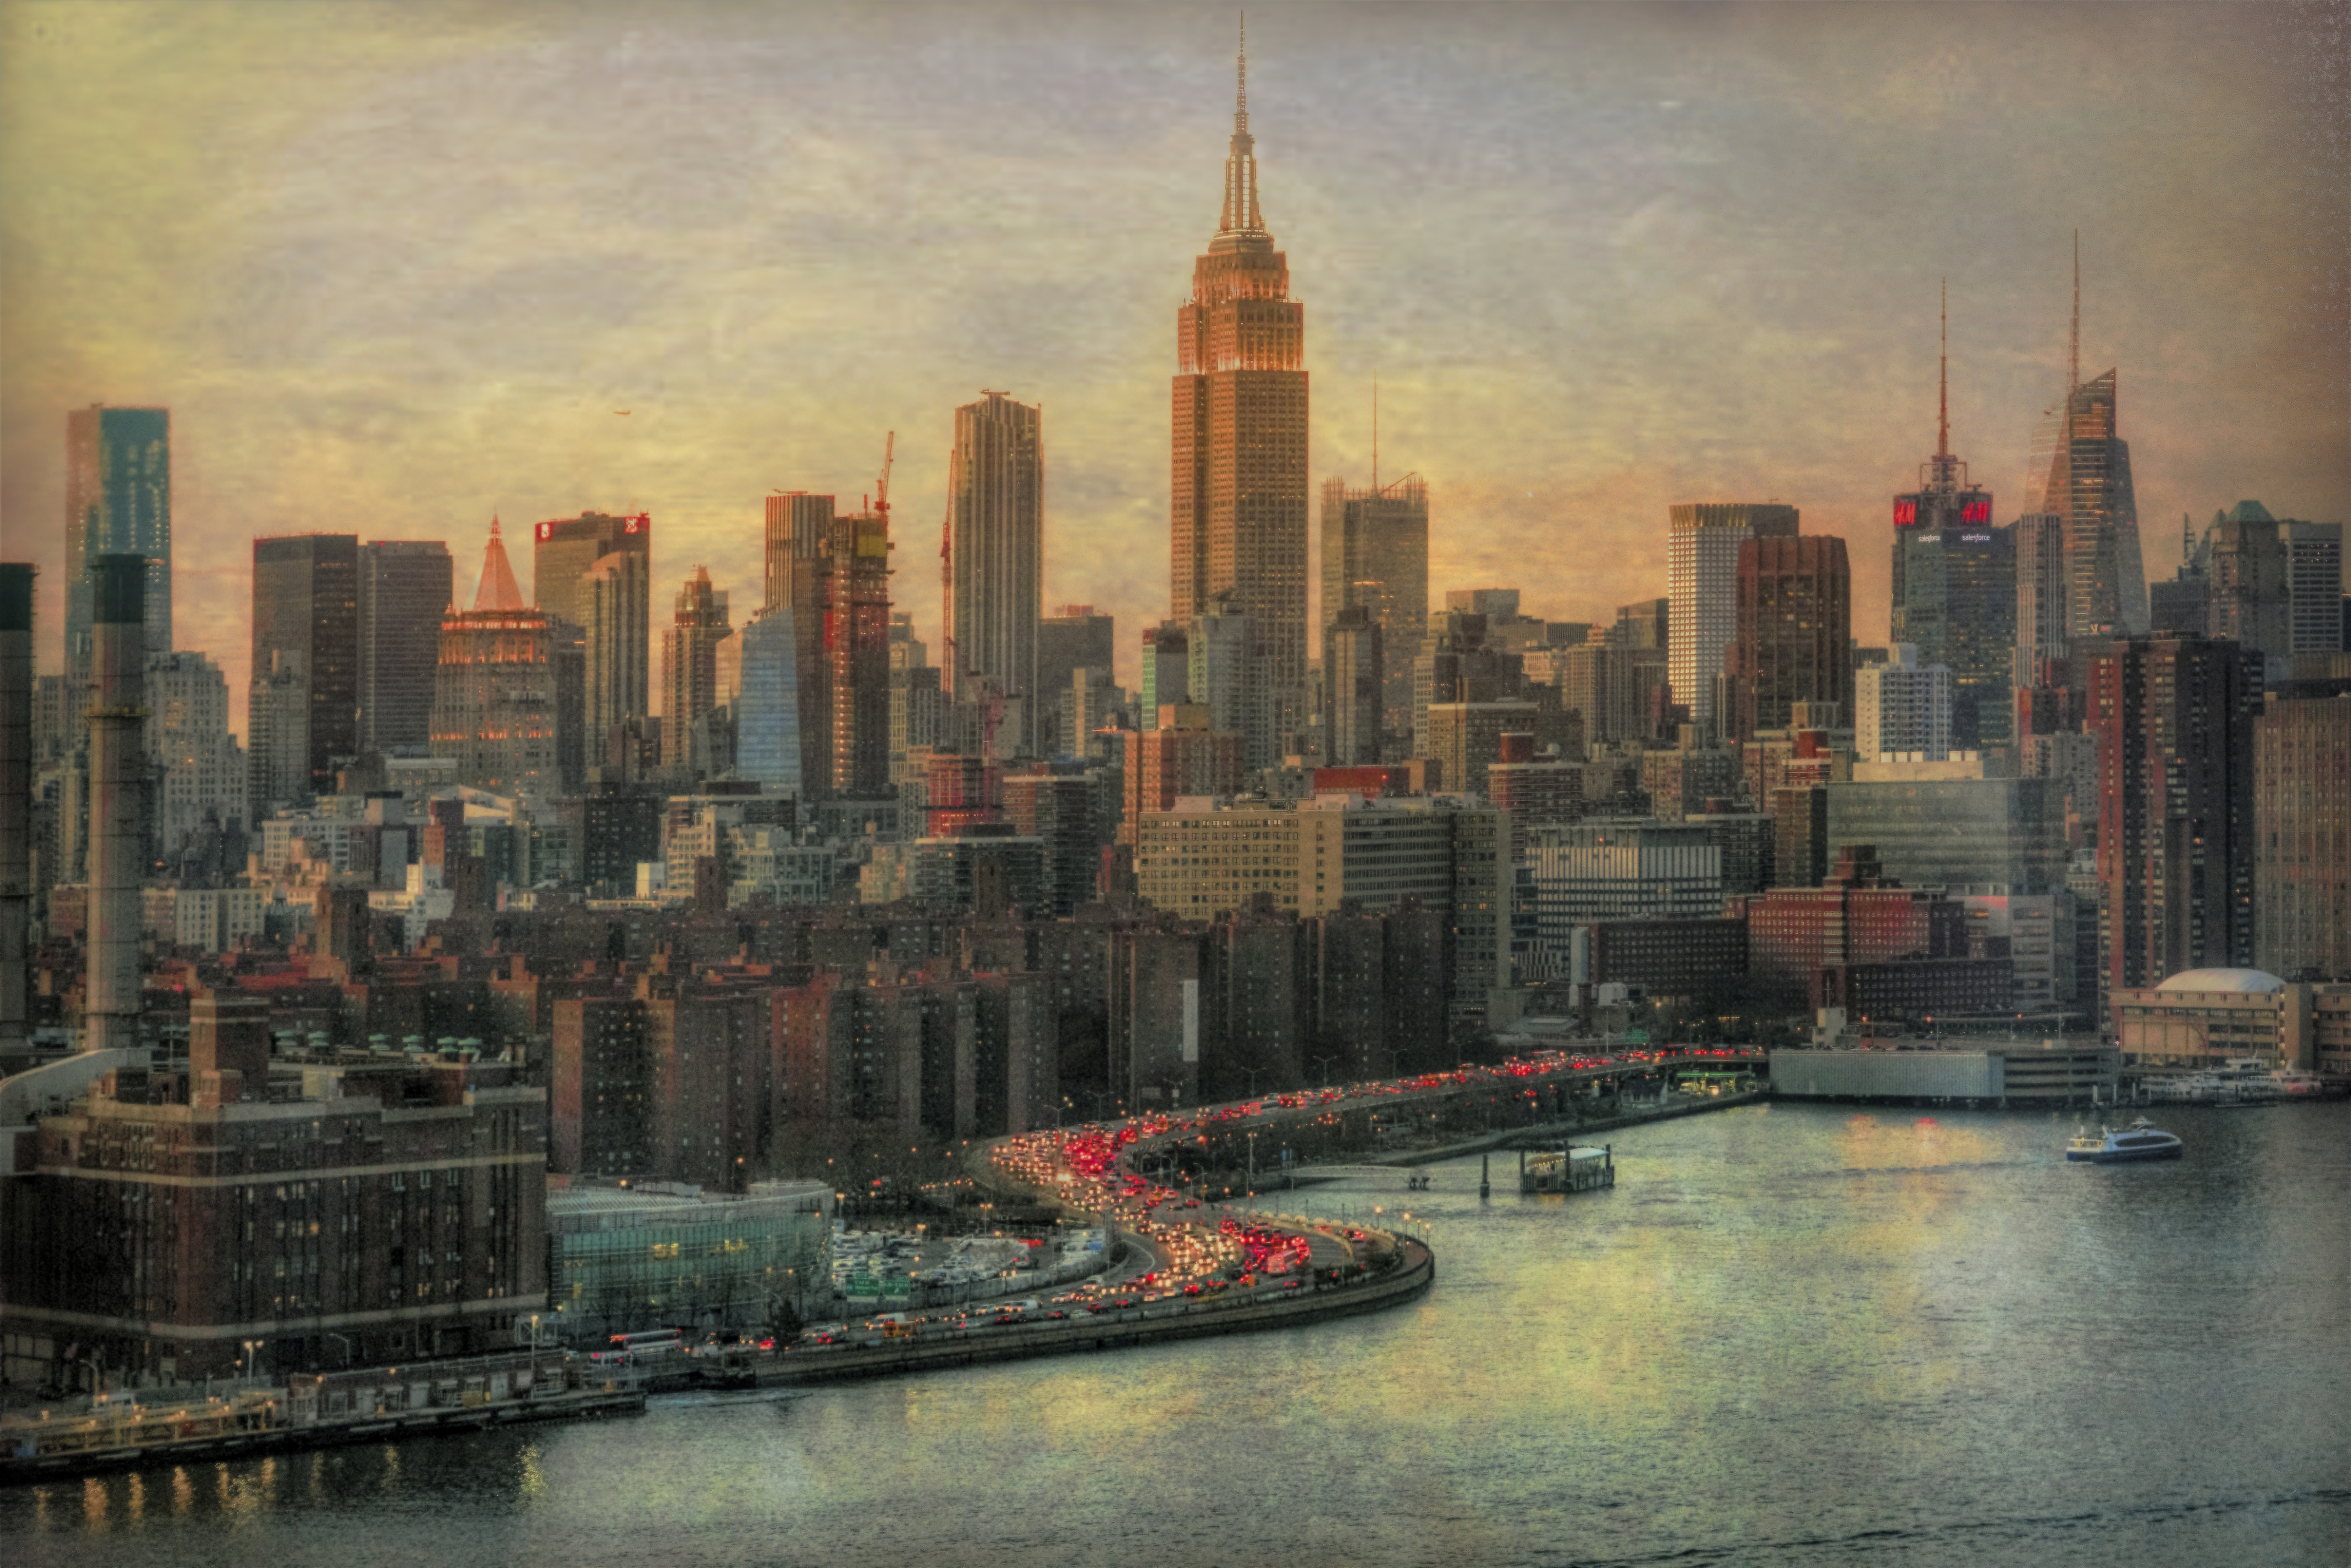 A New York sort of Evening by Mike-Hope